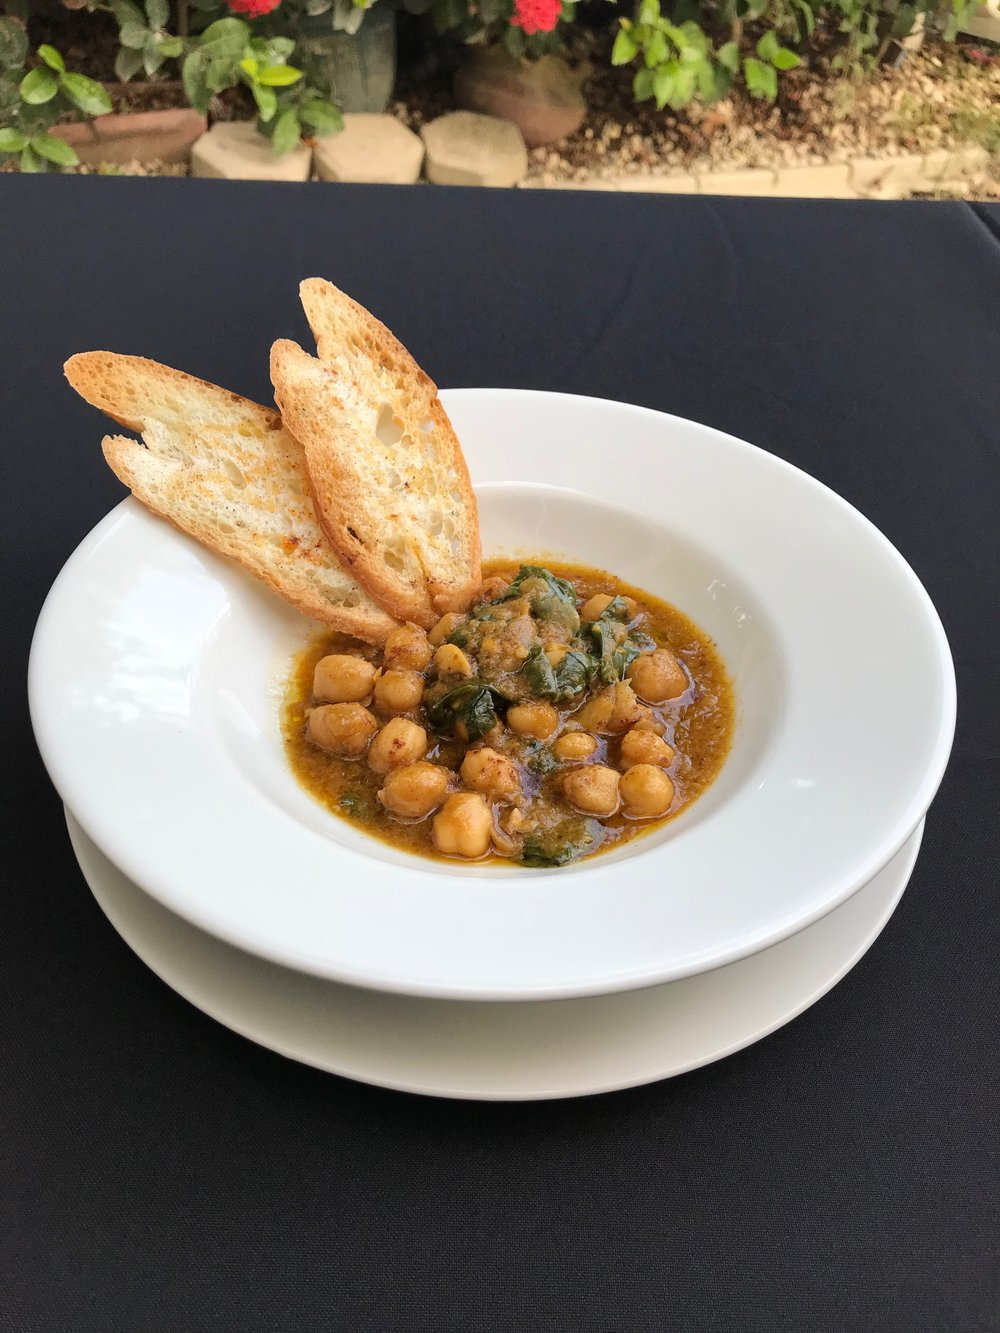 Chickpea & Spinach Stew  - Spanish style stew, with chickpeas and spinach, garlic, saffron, cumin, paprika, and sherry. Served with crostini